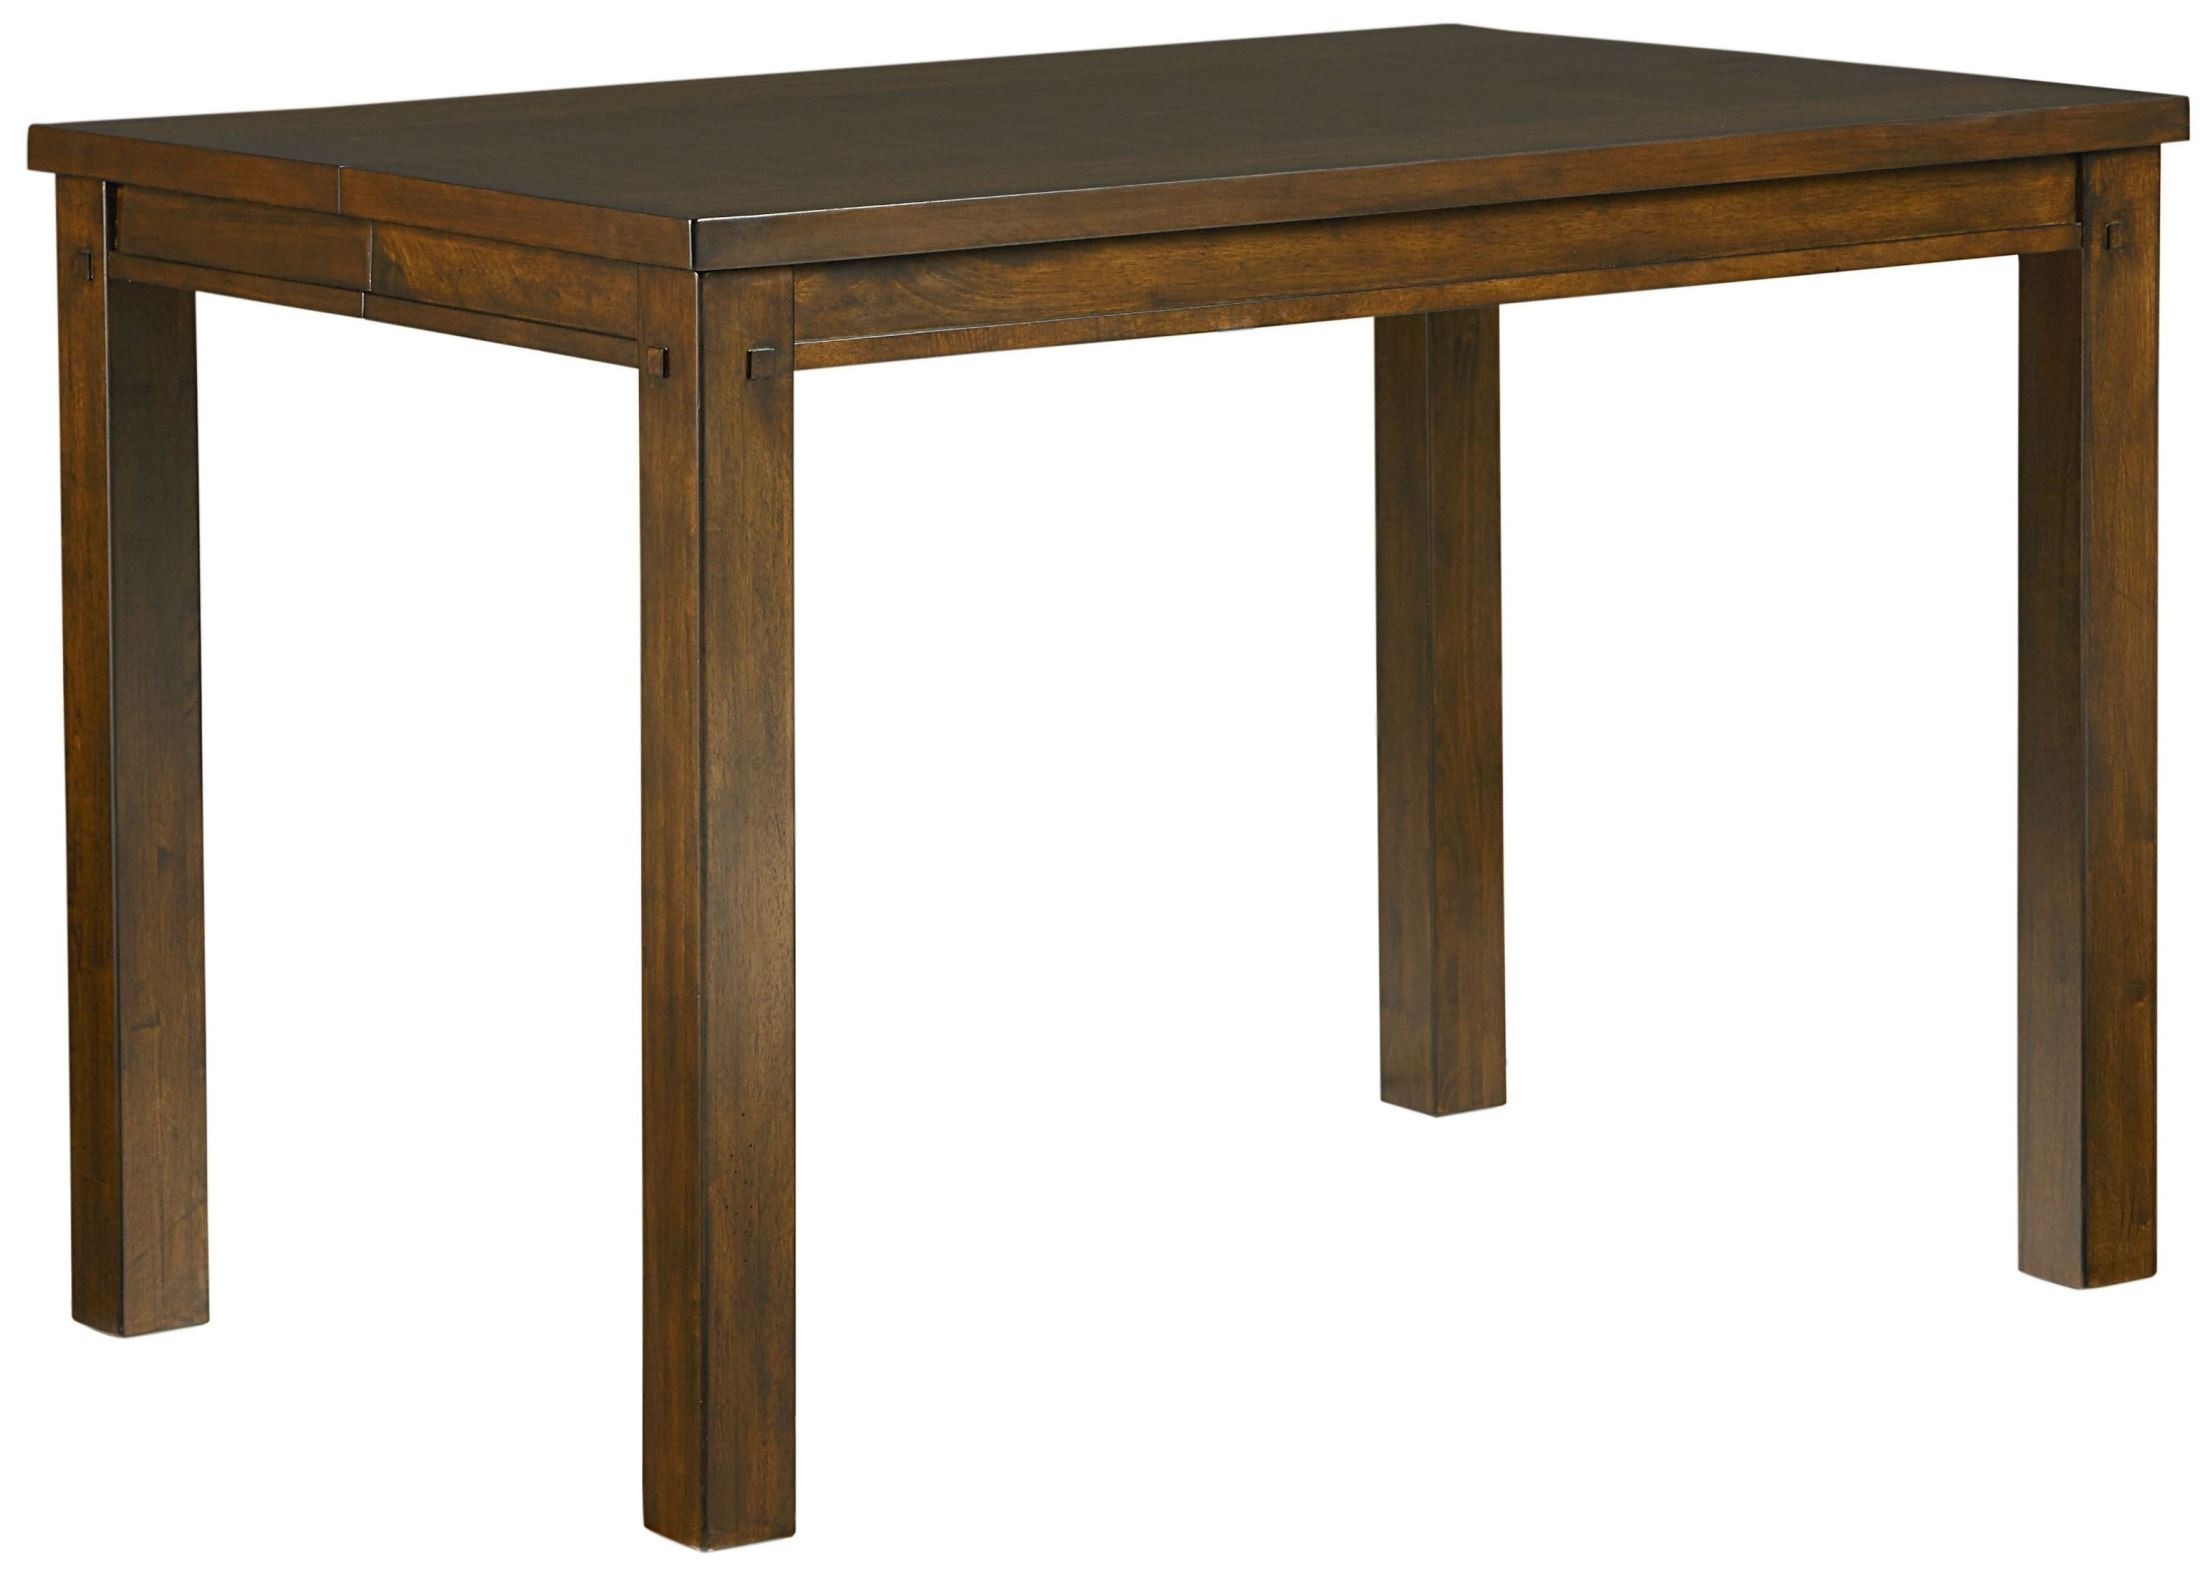 cameron golden tobacco brown square counter height dining table 14316 standard furniture. Black Bedroom Furniture Sets. Home Design Ideas